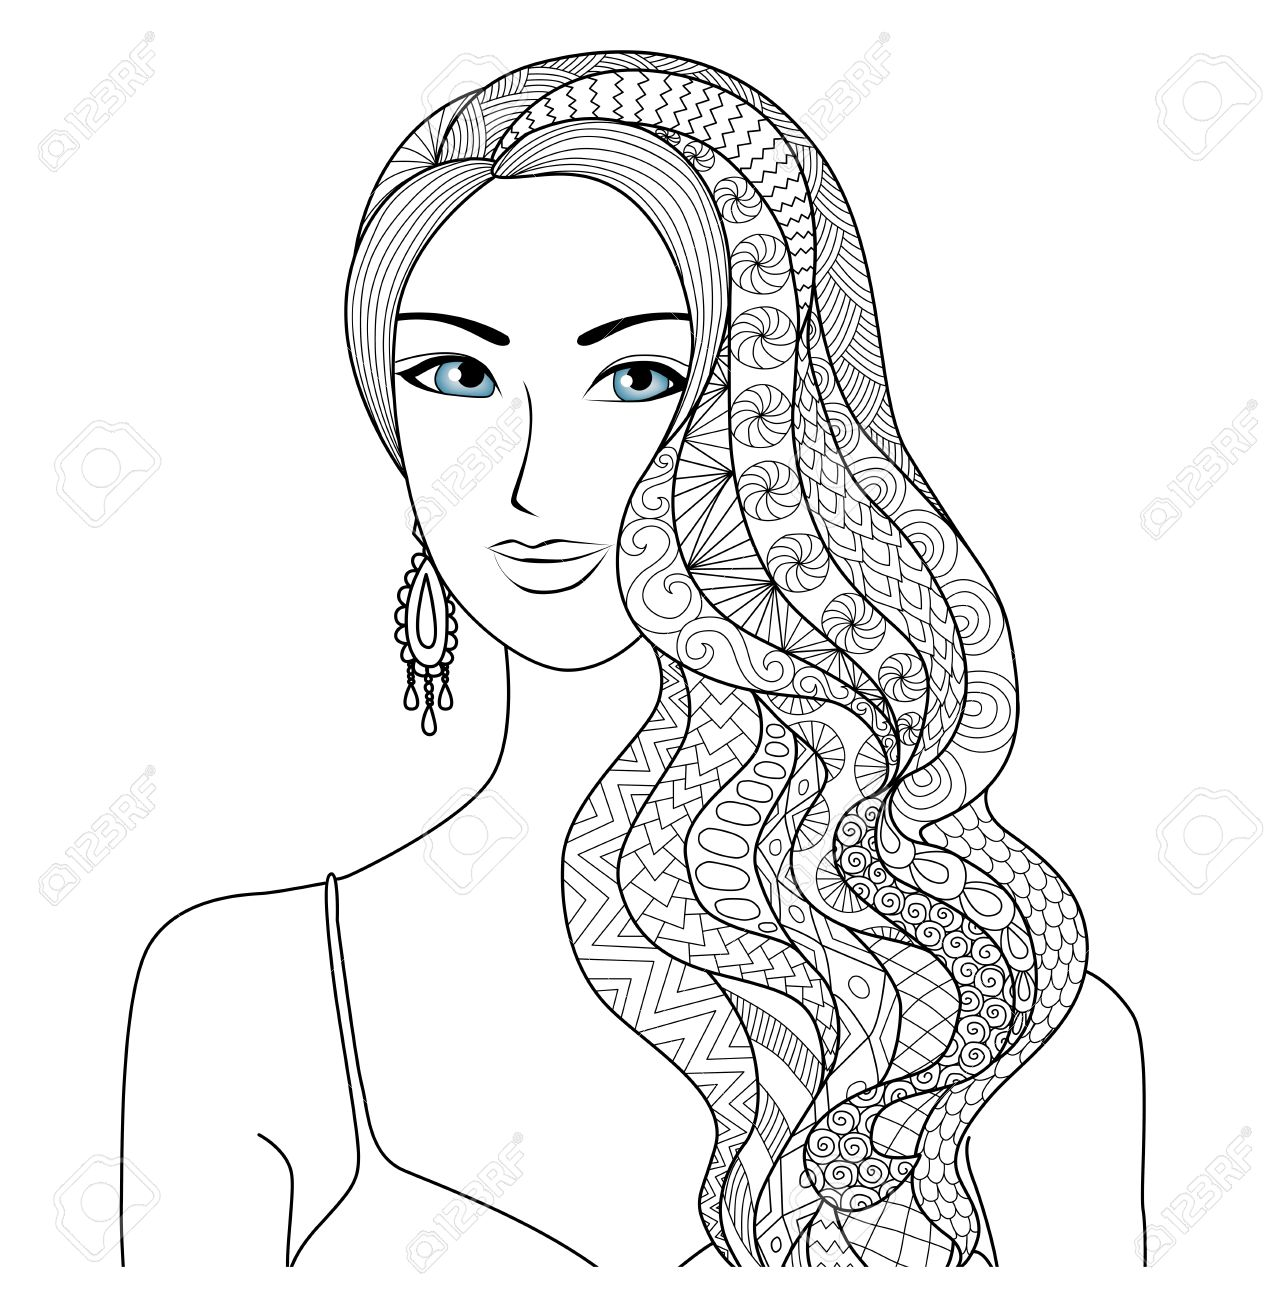 drawing sexy woman zentangle hair style for coloring book for adult stock vector 51197224 - Sexy Coloring Book